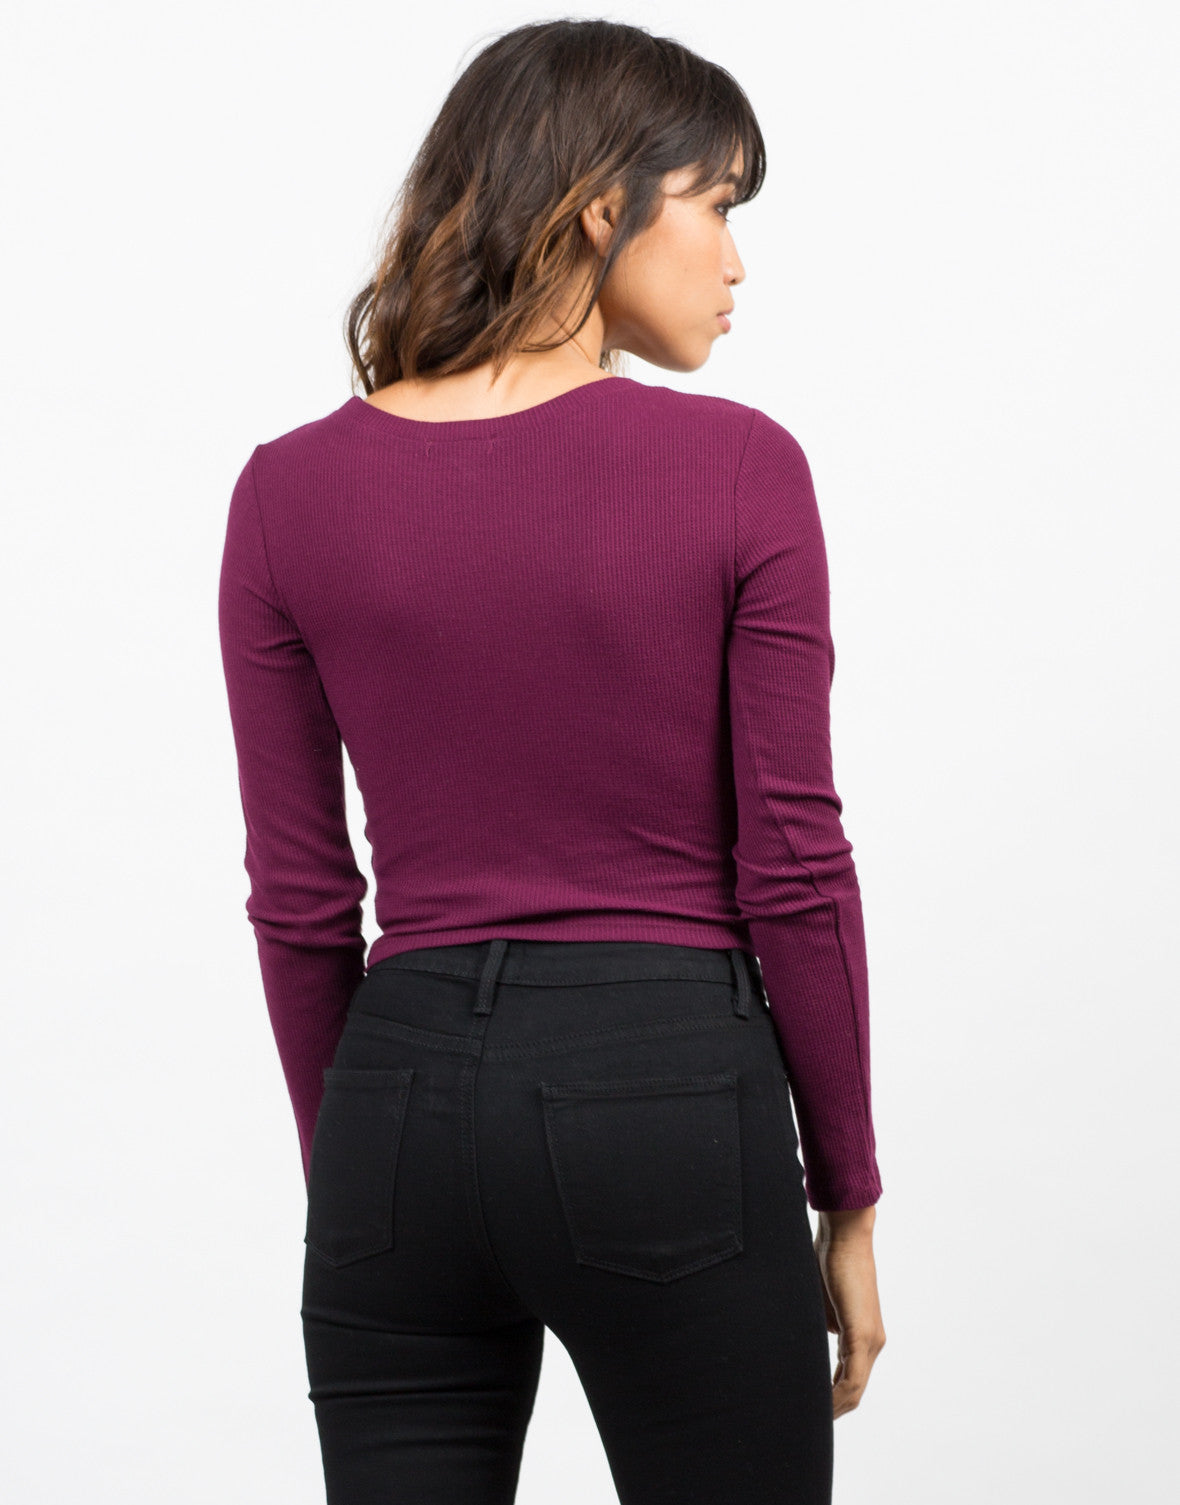 Back View of Long Sleeve Cropped Thermal